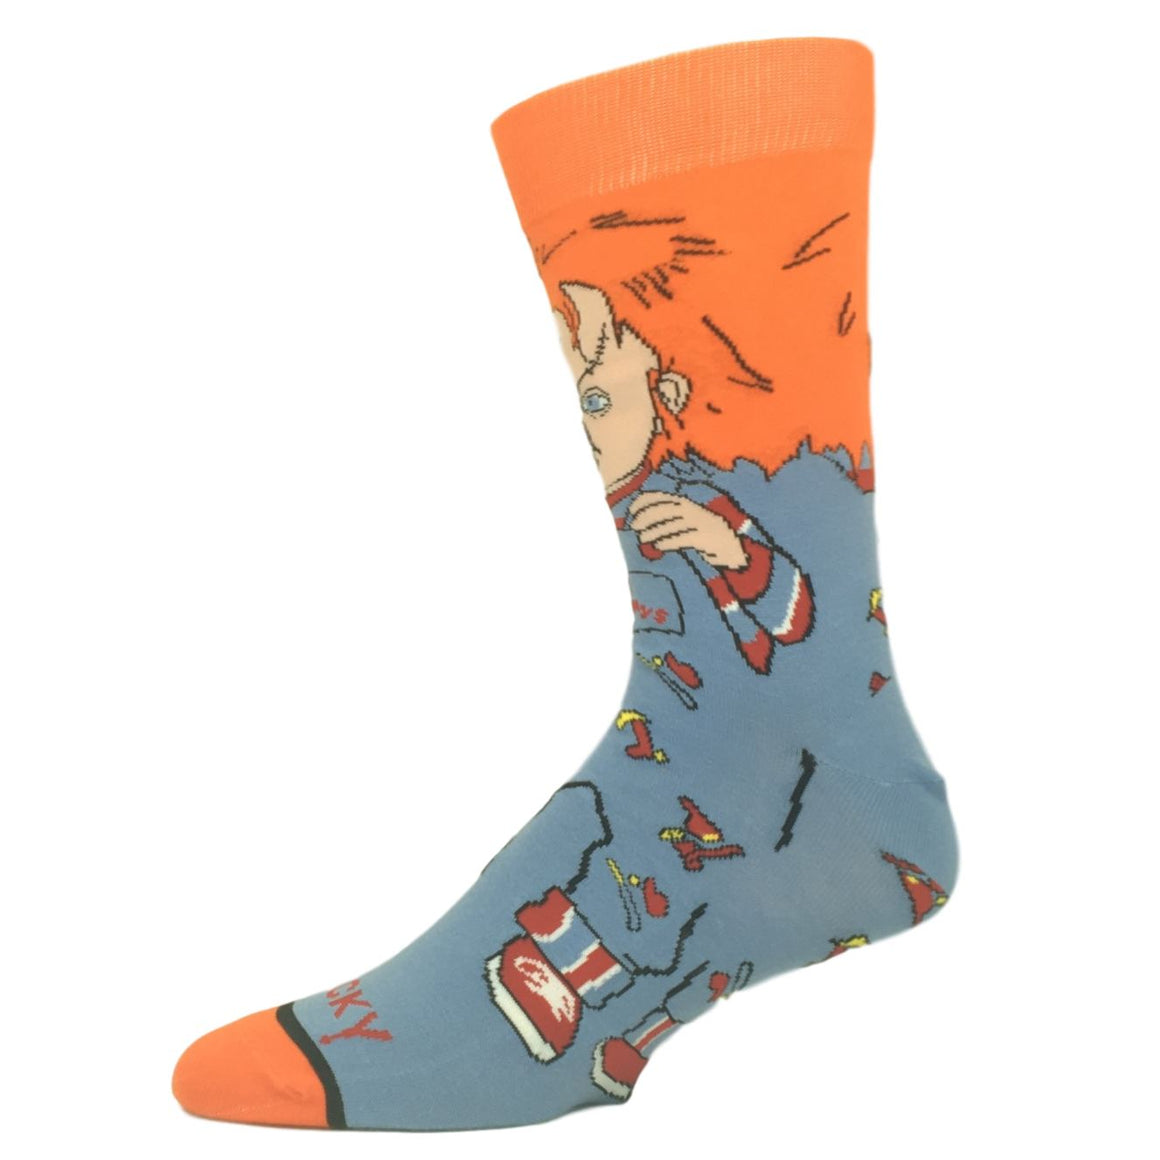 Chucky 360 Socks by Odd Sox - The Sock Spot